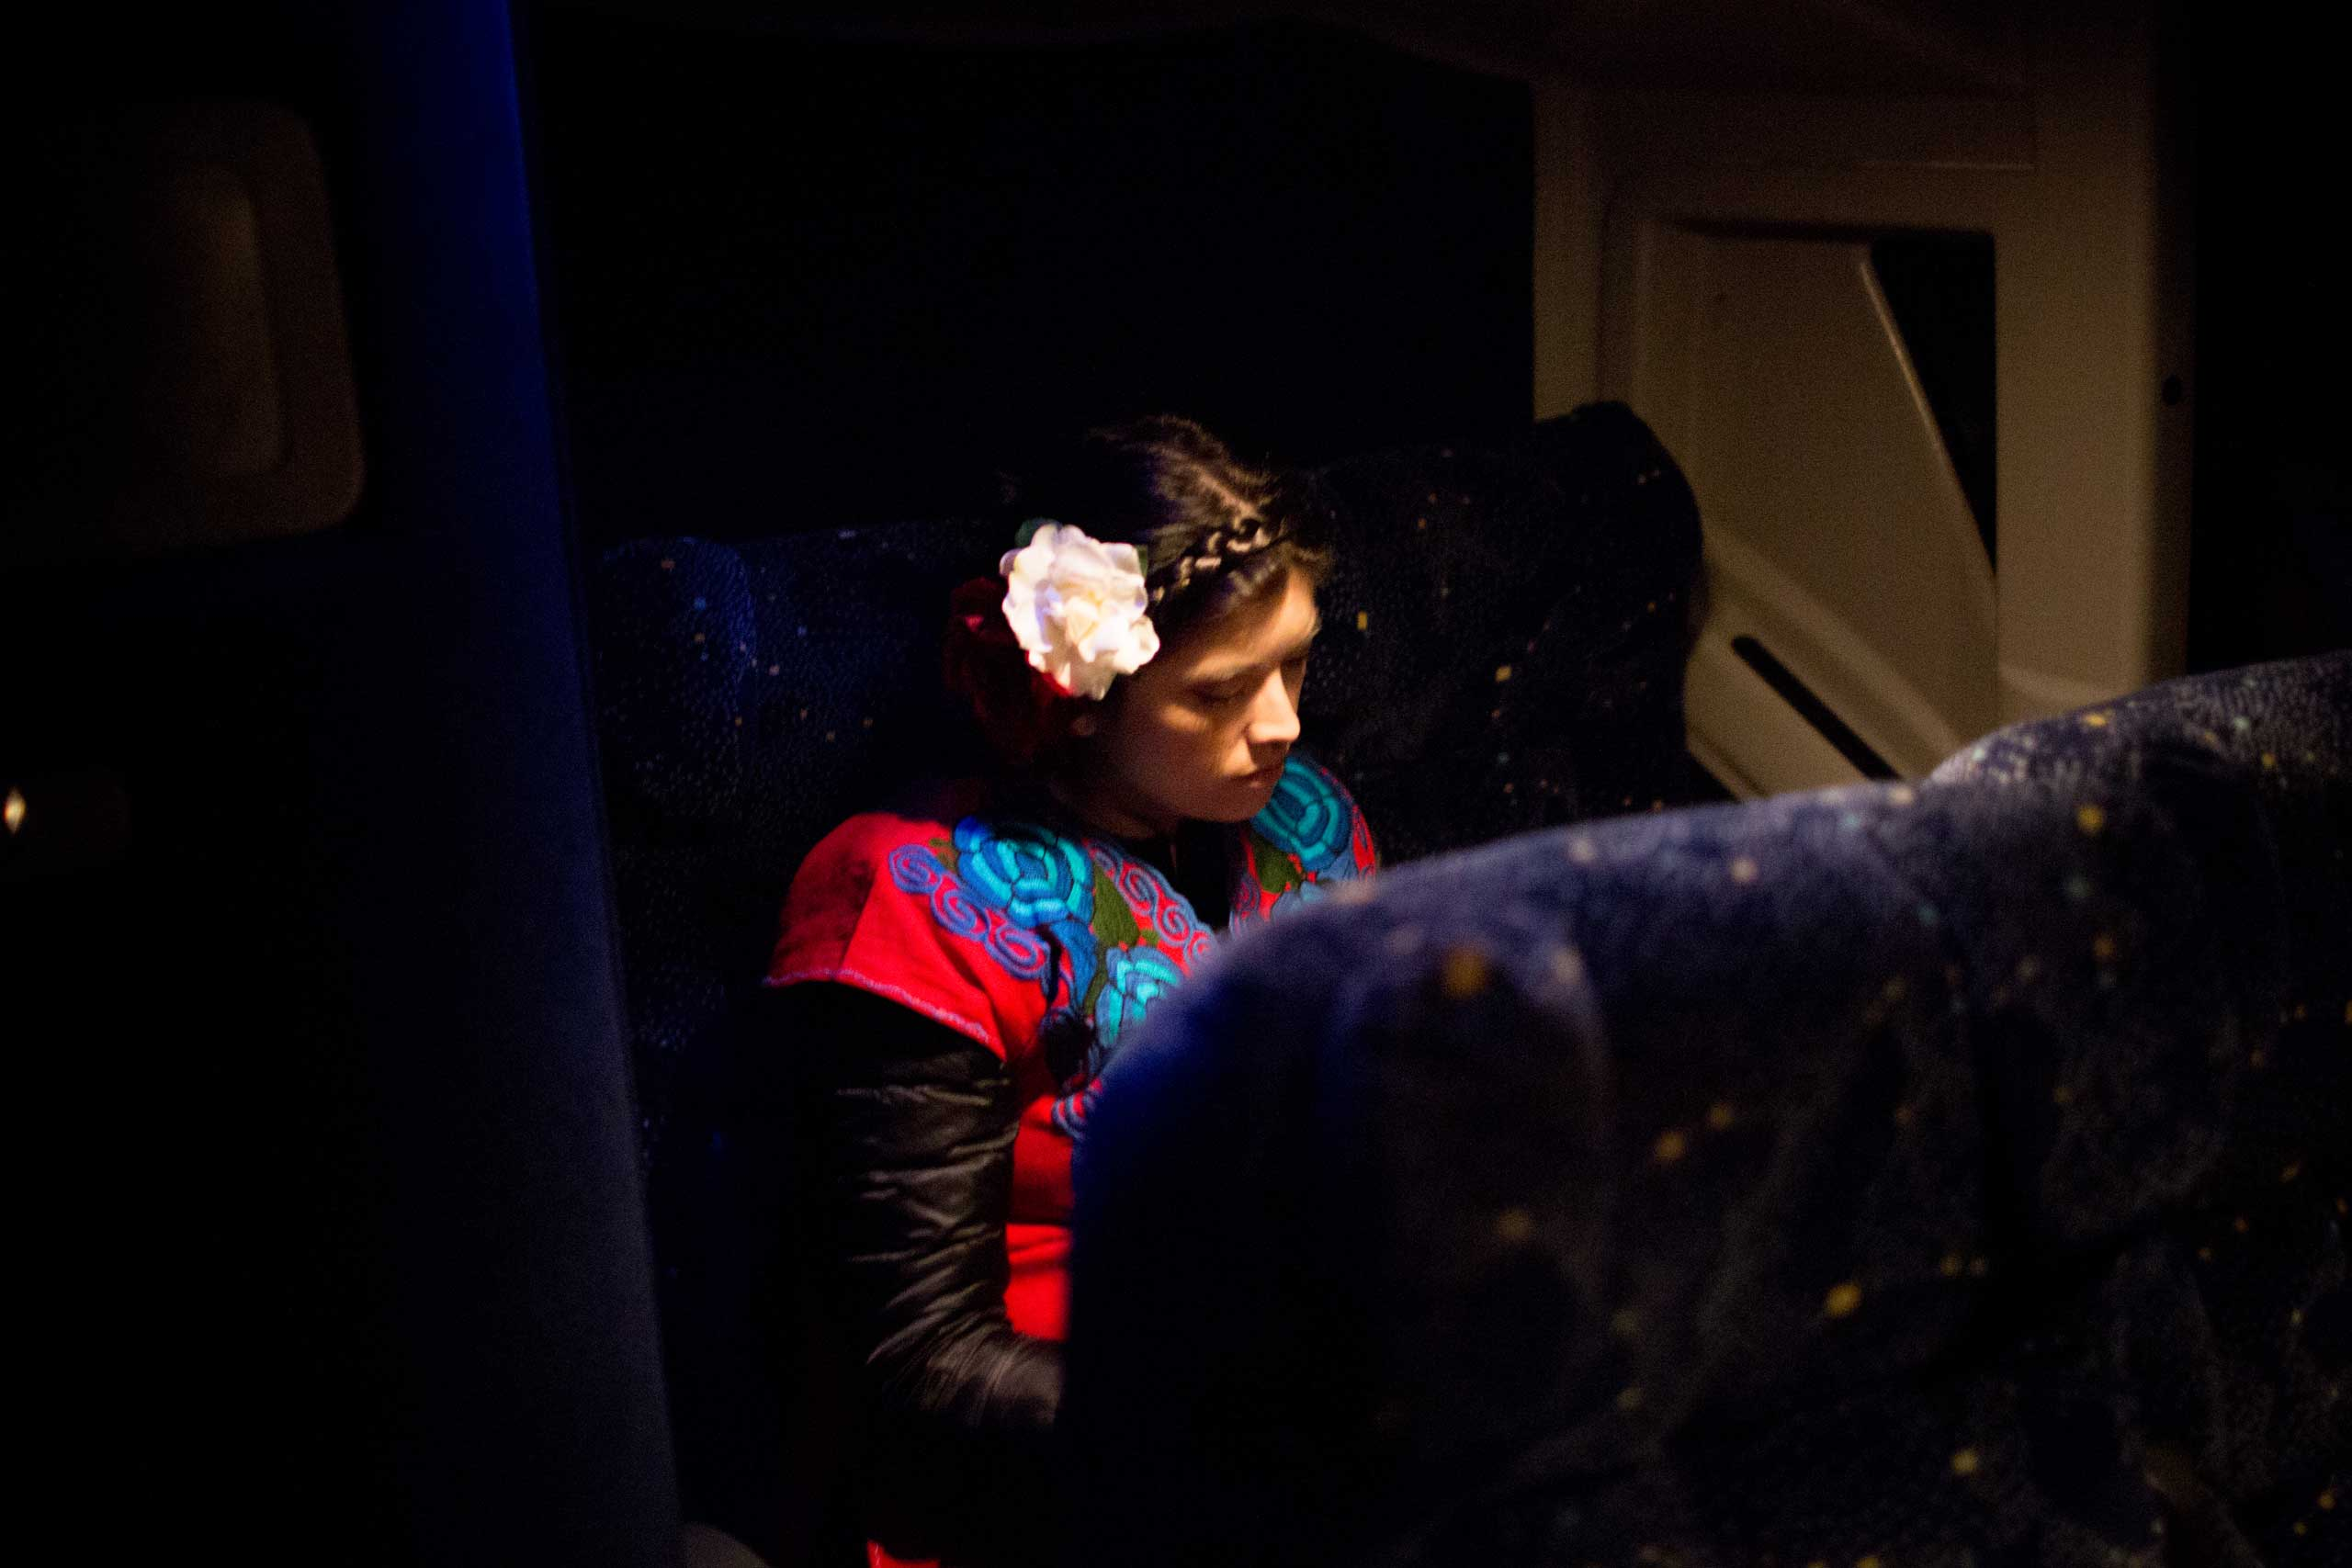 5:33 AM: Karina Garcia, 31, is one of the main organizers of the Answer Coalition event. As we approach D.C., she takes a moment to rest.